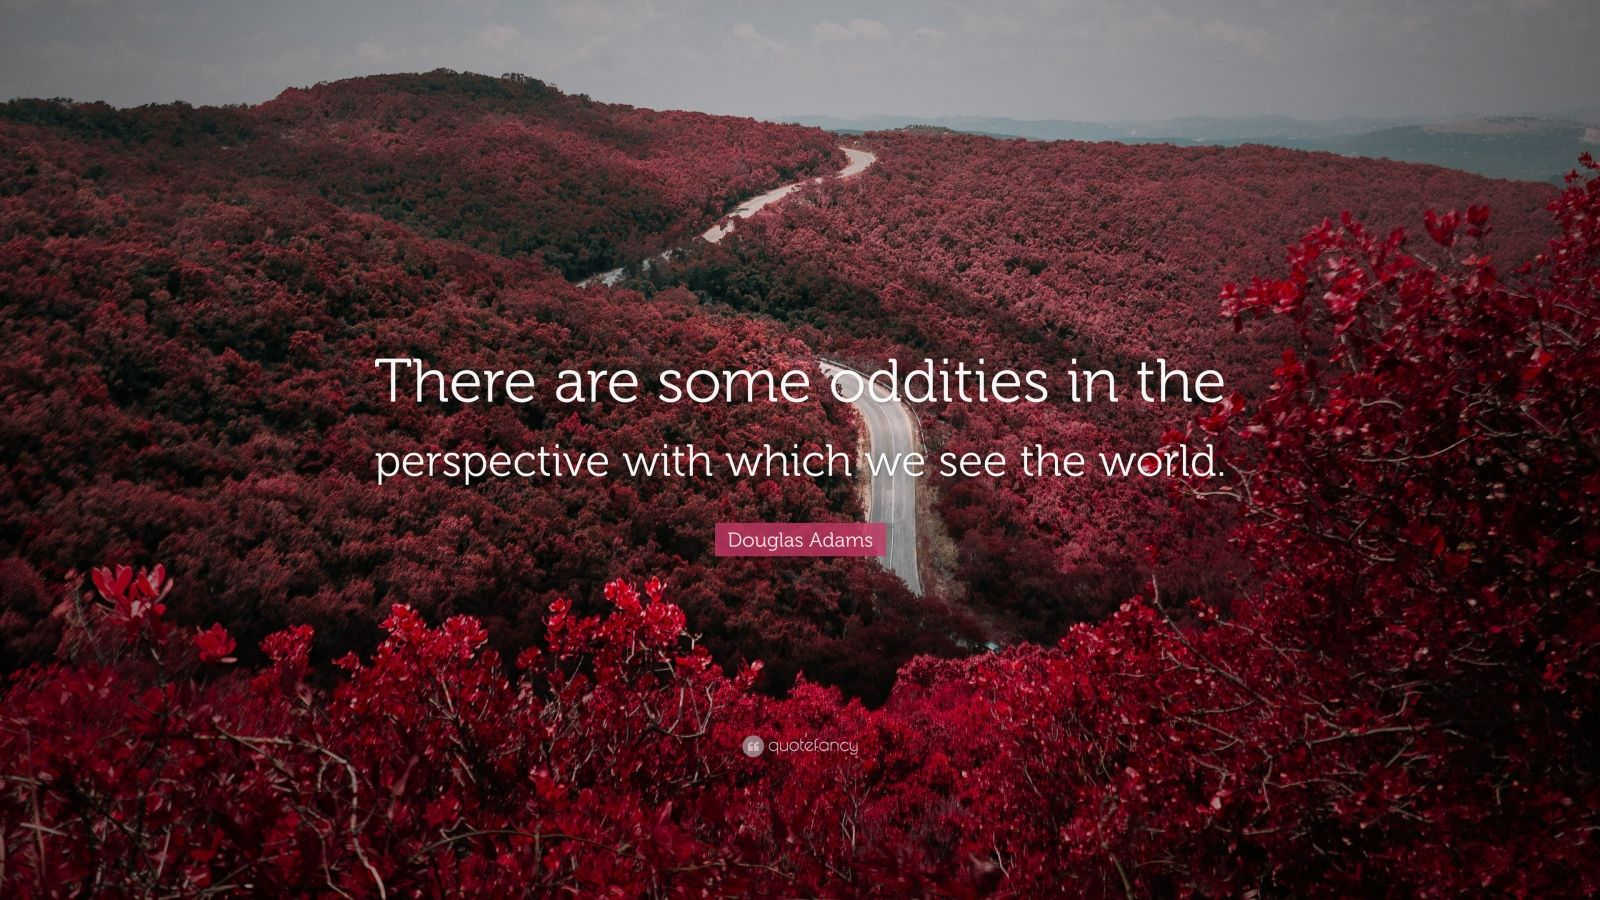 """Douglas Adams Quote: """"There are some oddities in the perspective with which we see the world."""""""